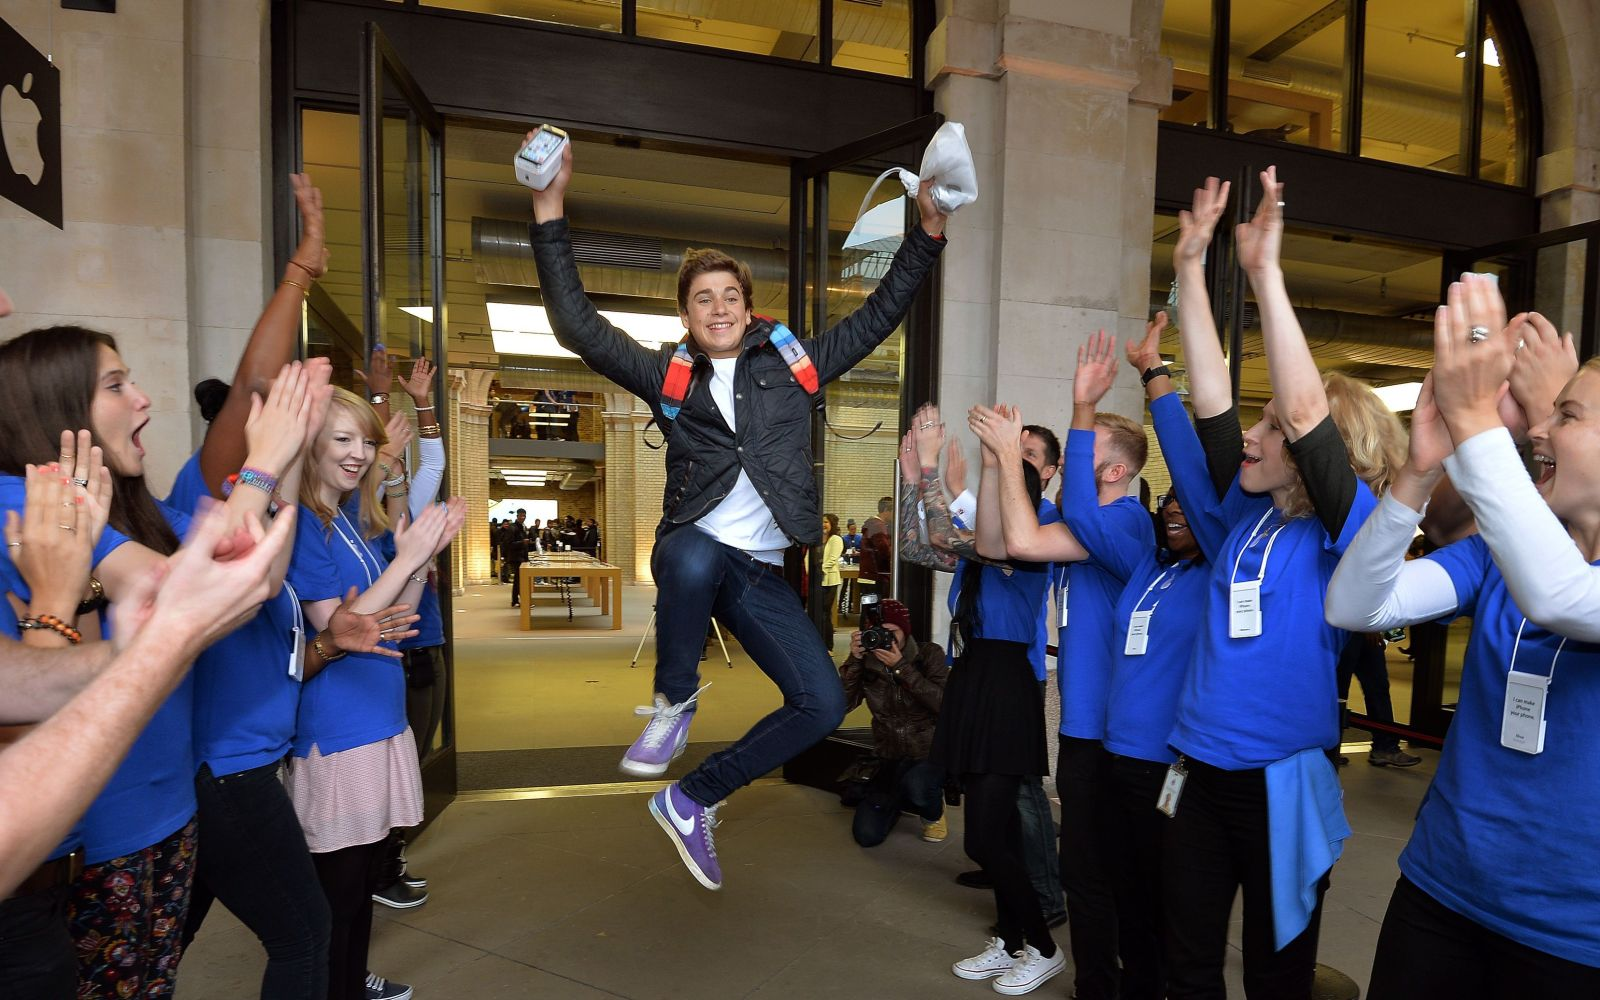 Apple looks to boost iPhone sales with reward program for retail staff